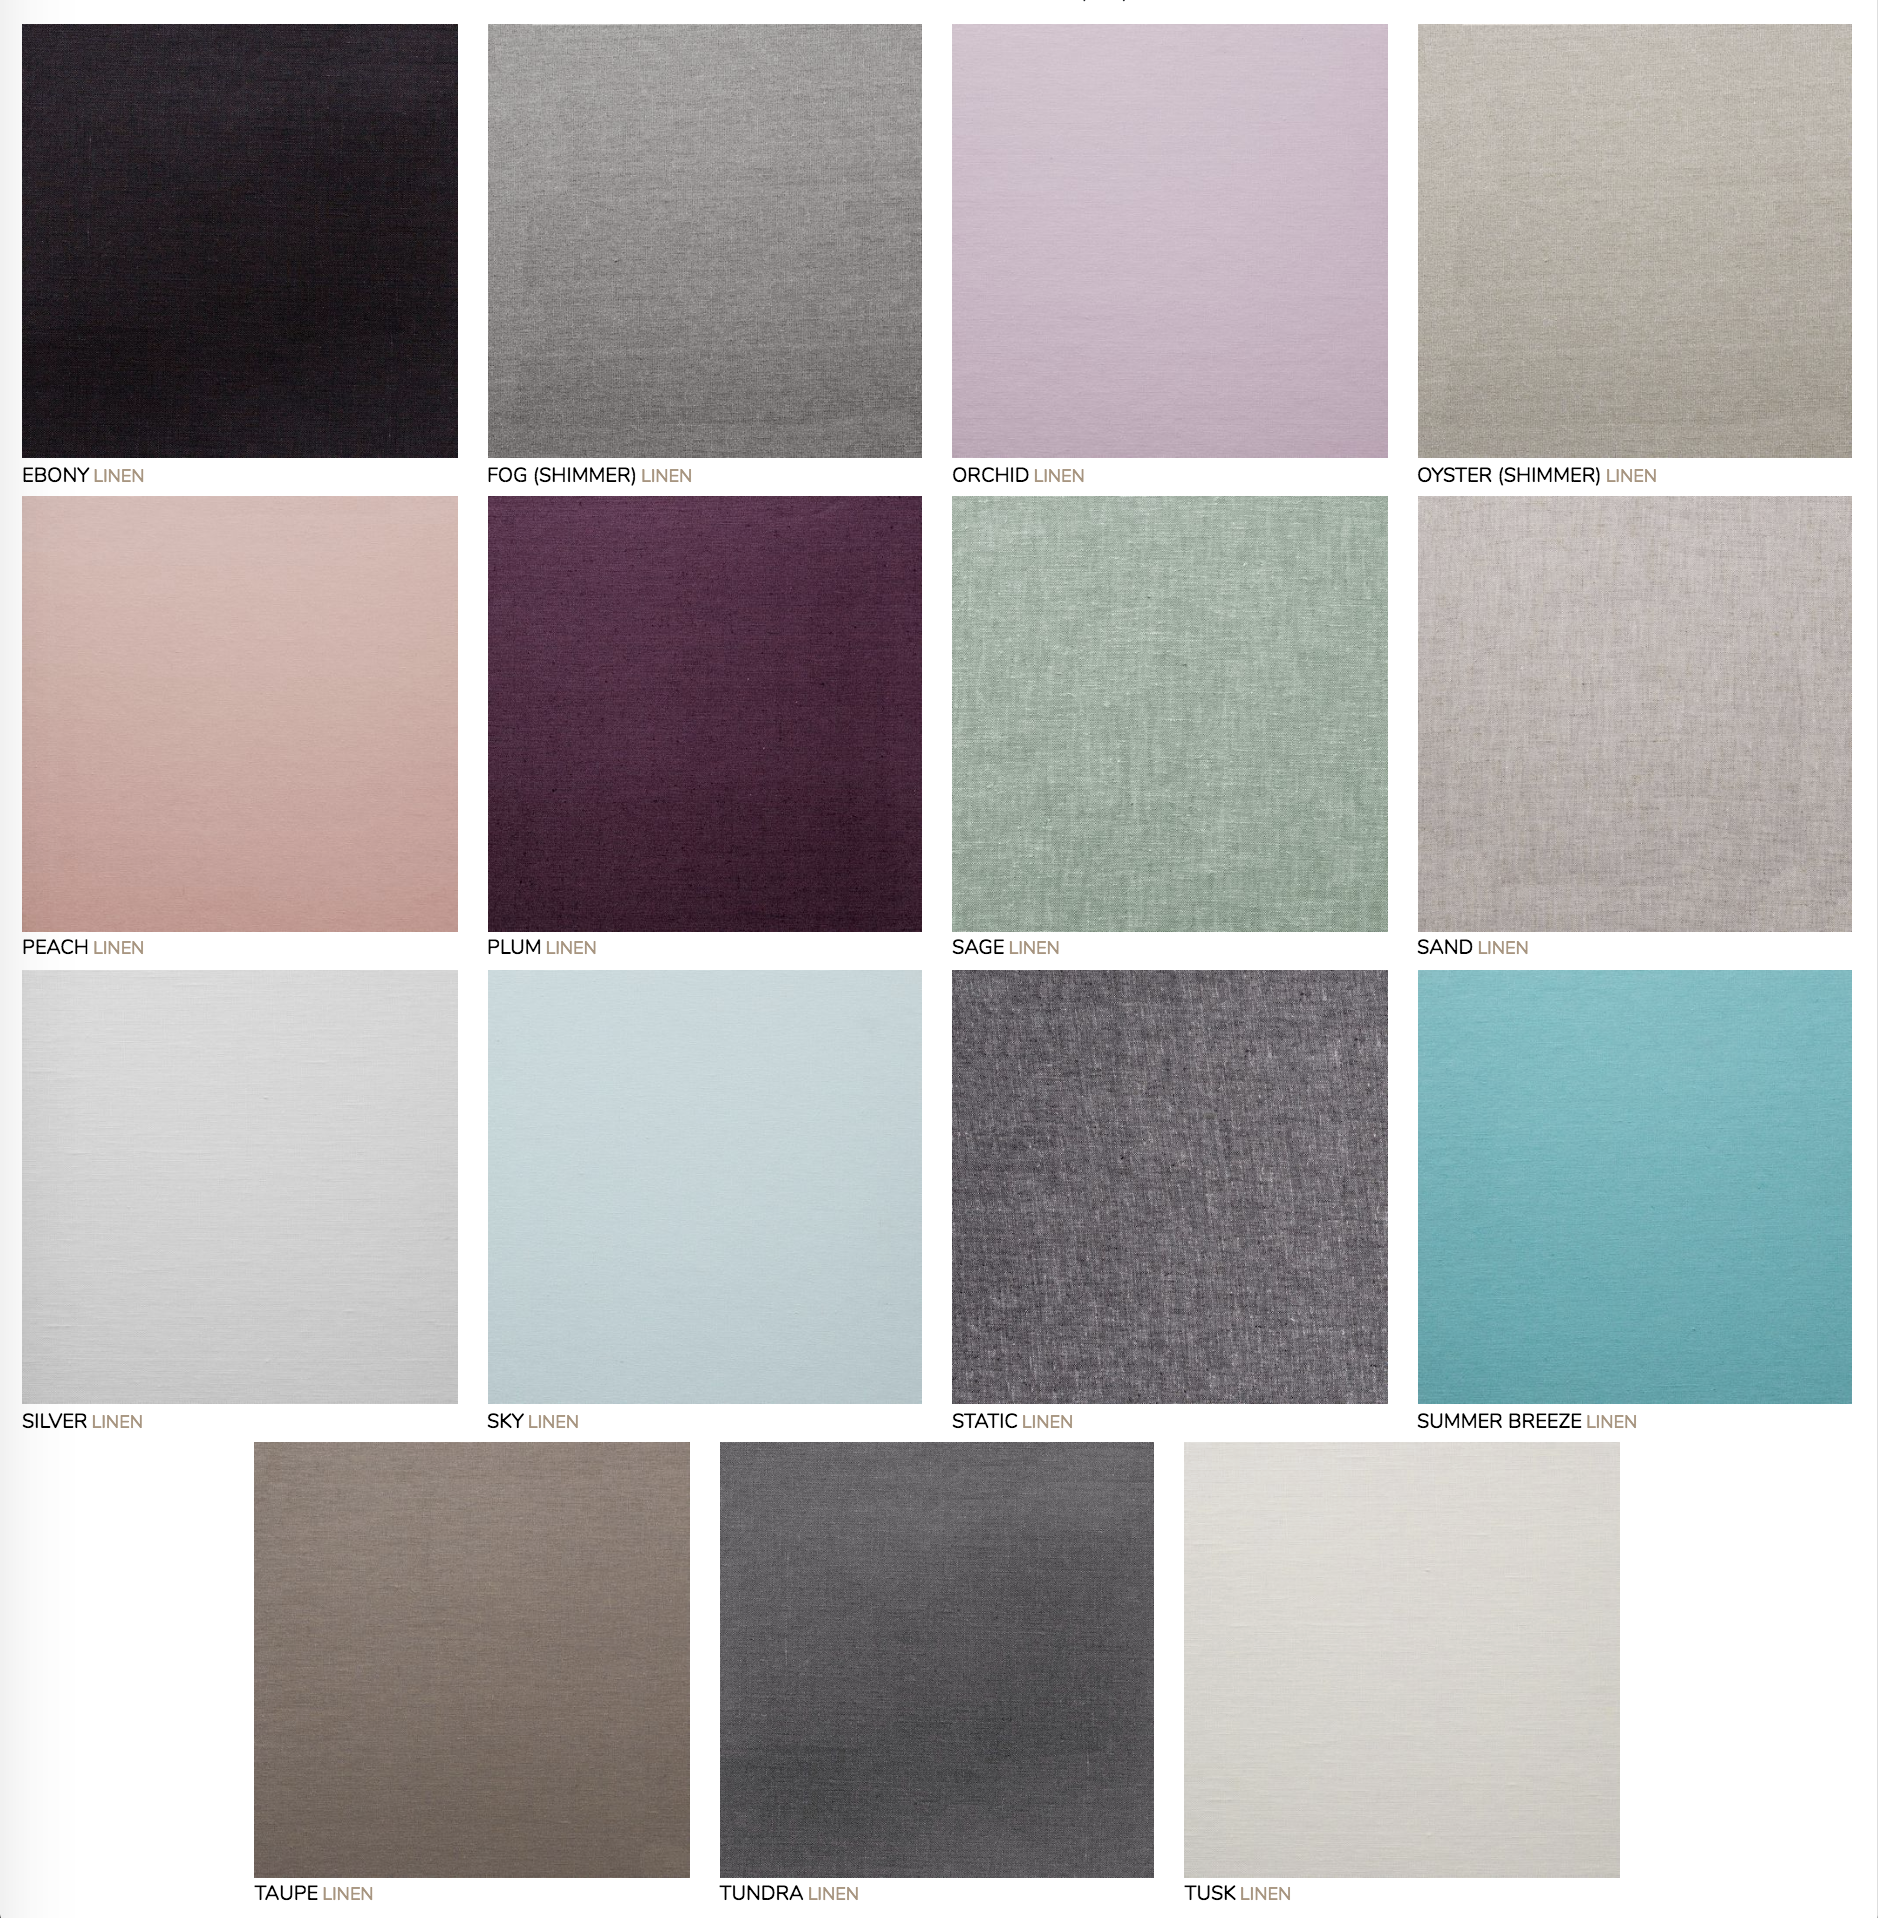 Linen Cover:  Wide range of colors, beautiful textile blend, soft fabric finish.